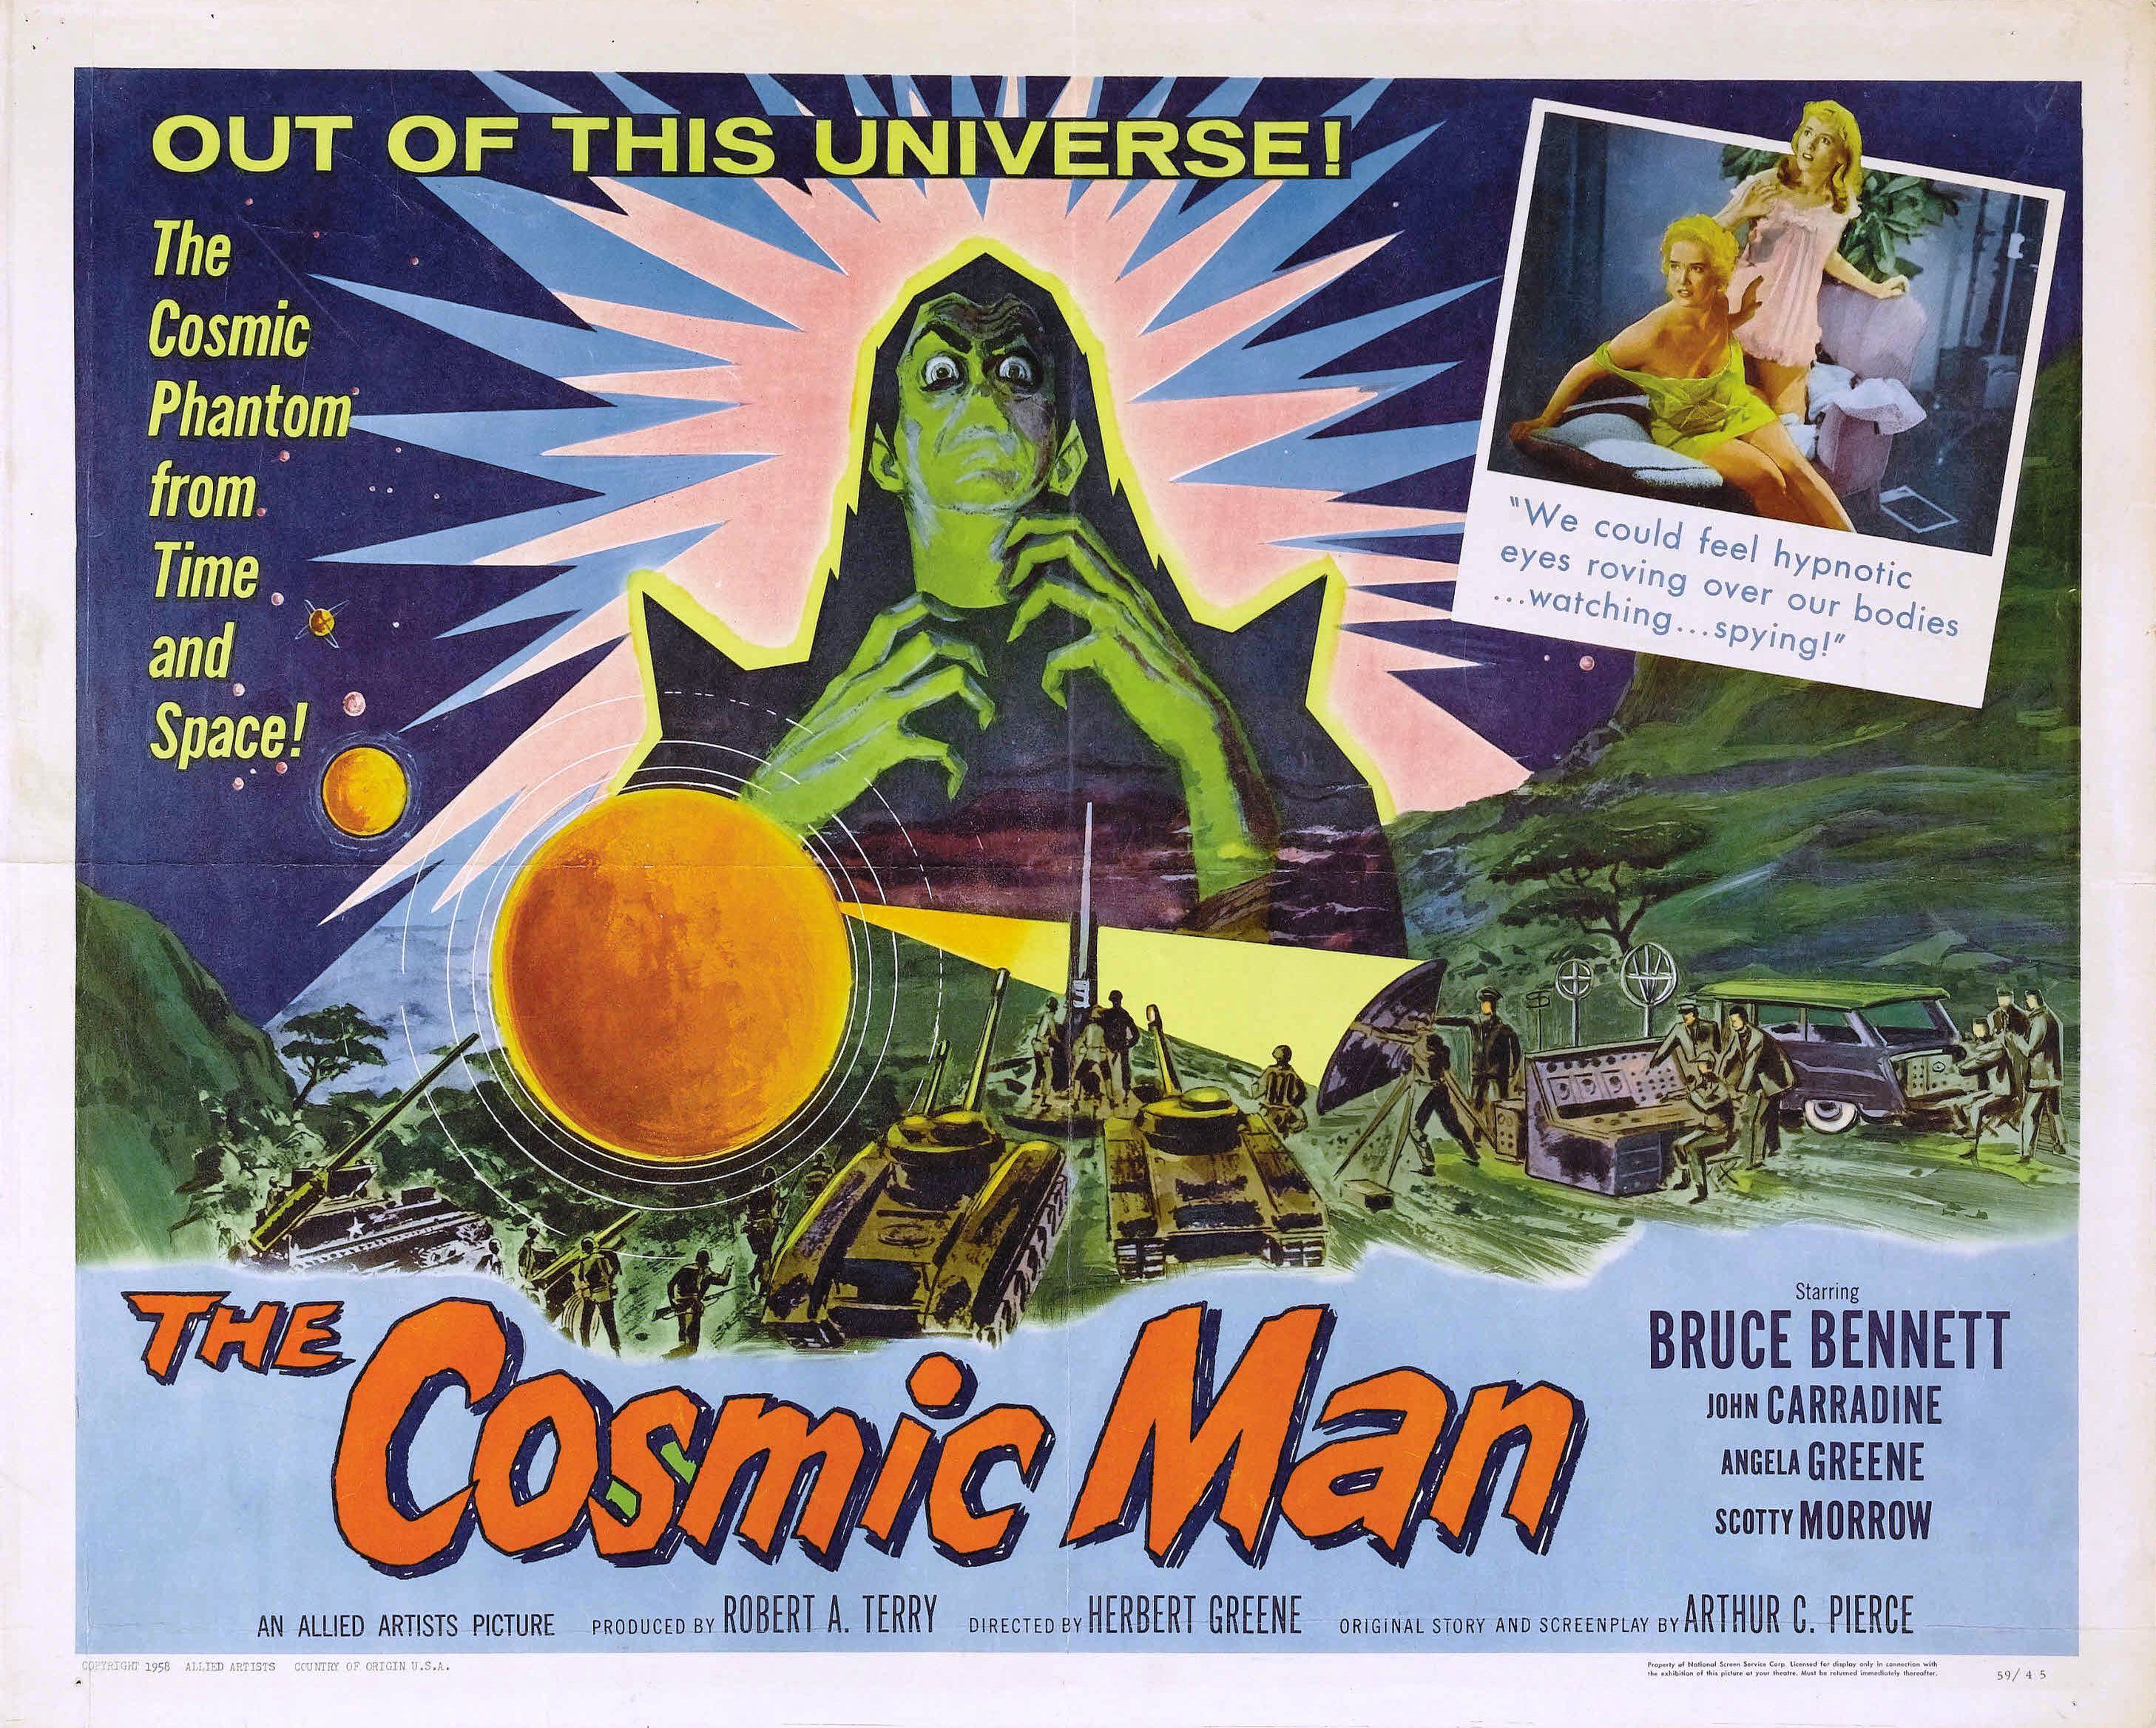 The Cosmic Man (1959)